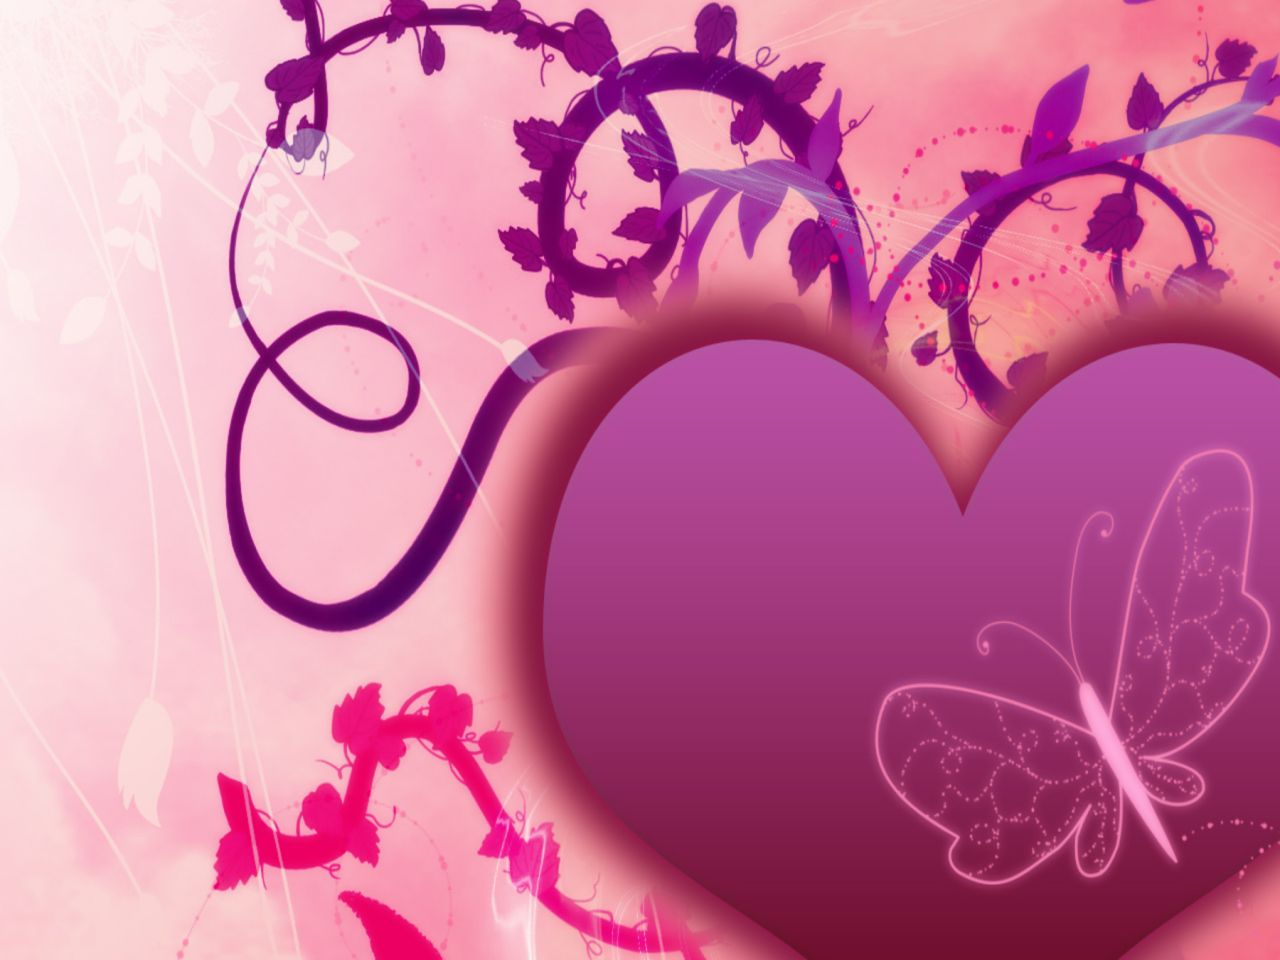 3d images love hearts 5 background wallpaper